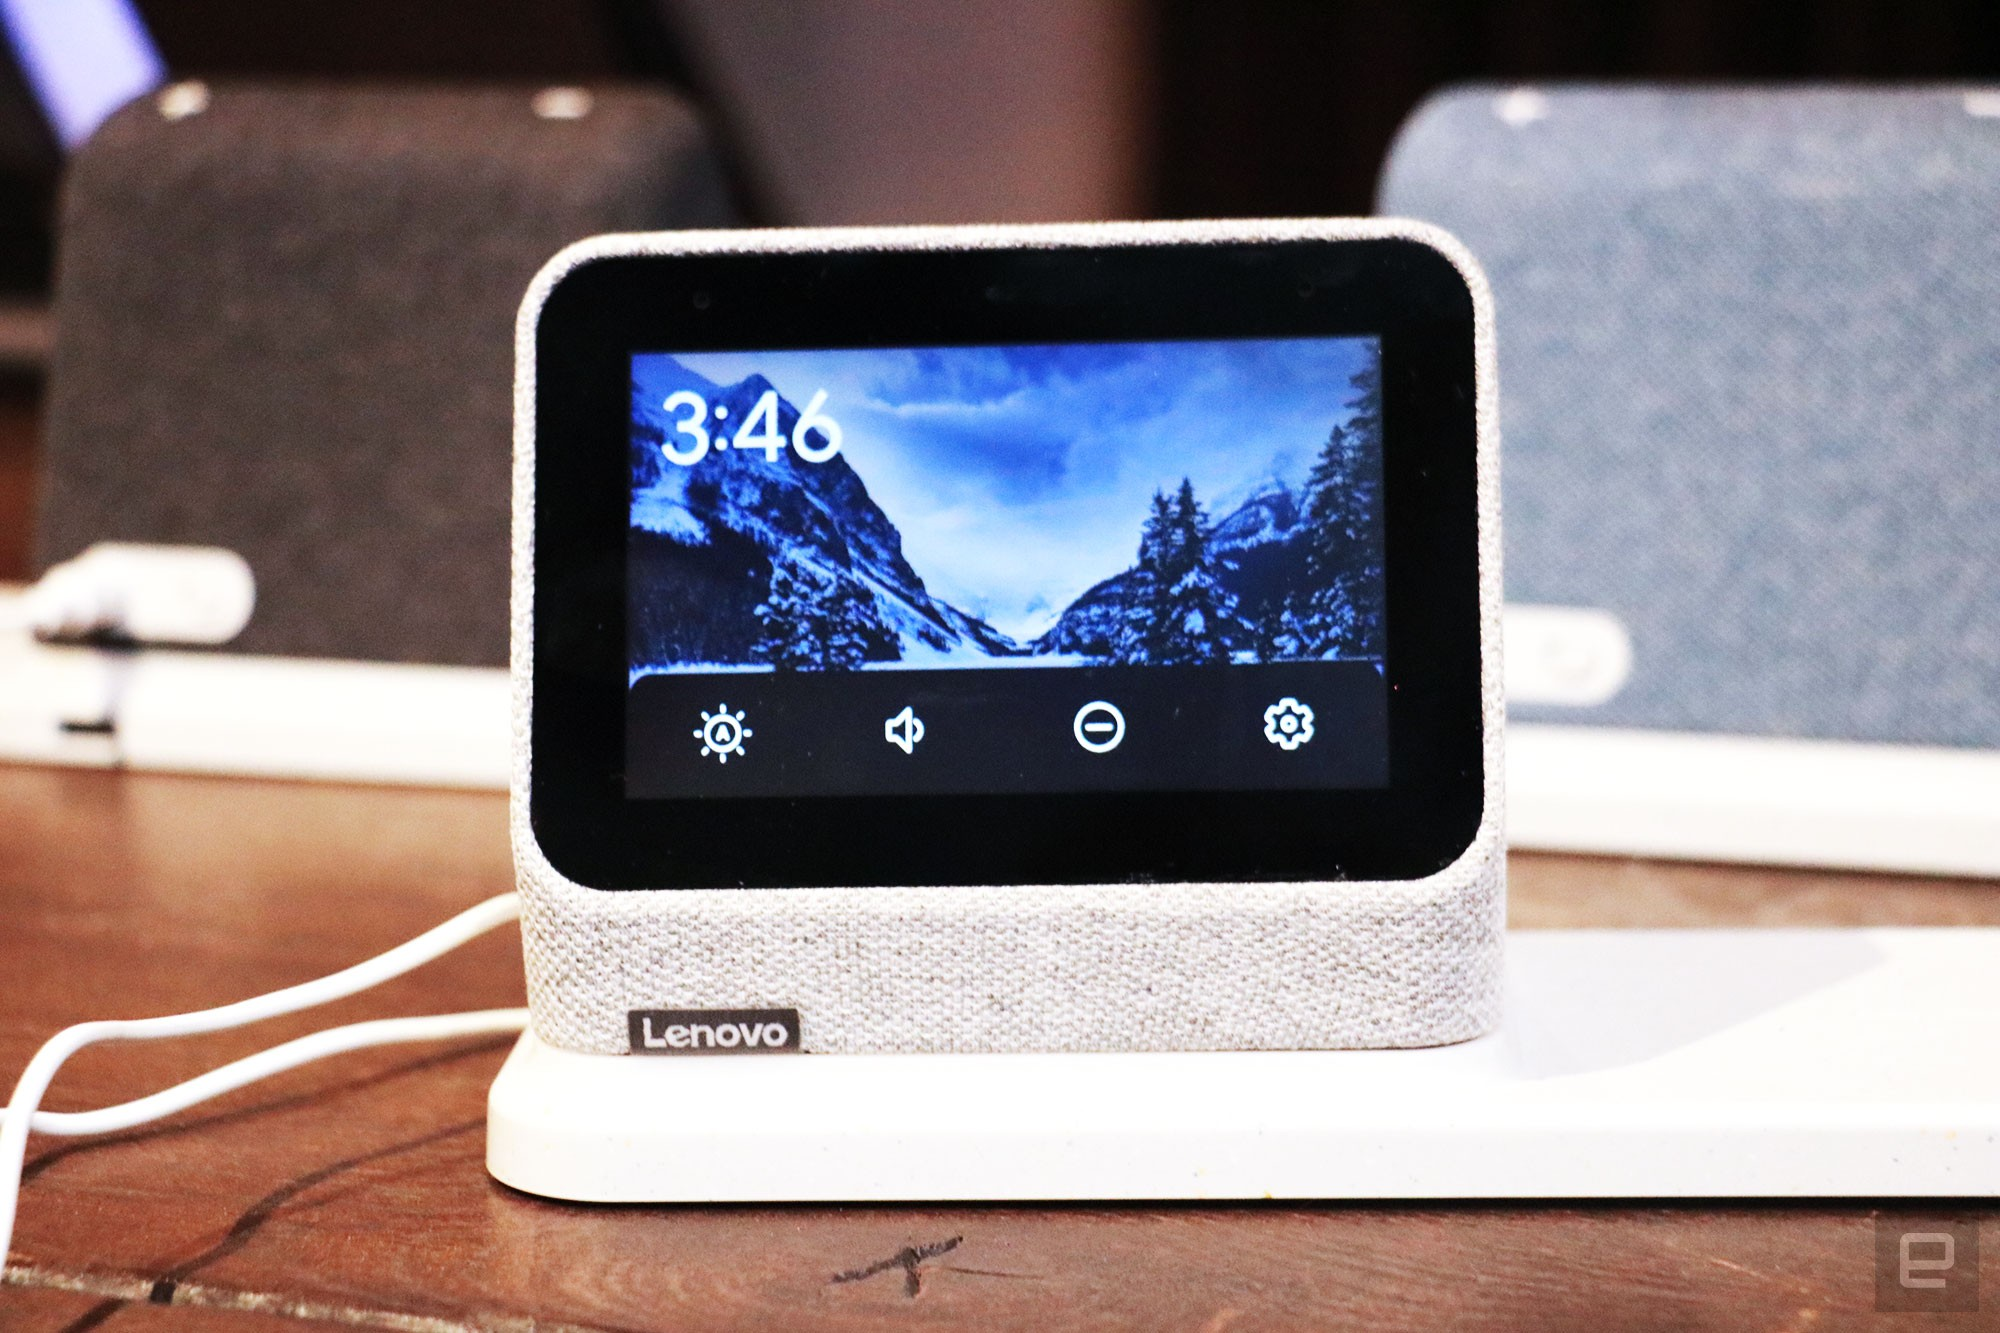 <p>A gray Lenovo Smart Clock 2 on a wireless charging dock with its screen facing the camera. A row of options for volume, brightness, do not disturb and settings take up the bottom of the display.  In the background are a black and a blue Smart Clock 2 on the left and right respectively.</p>